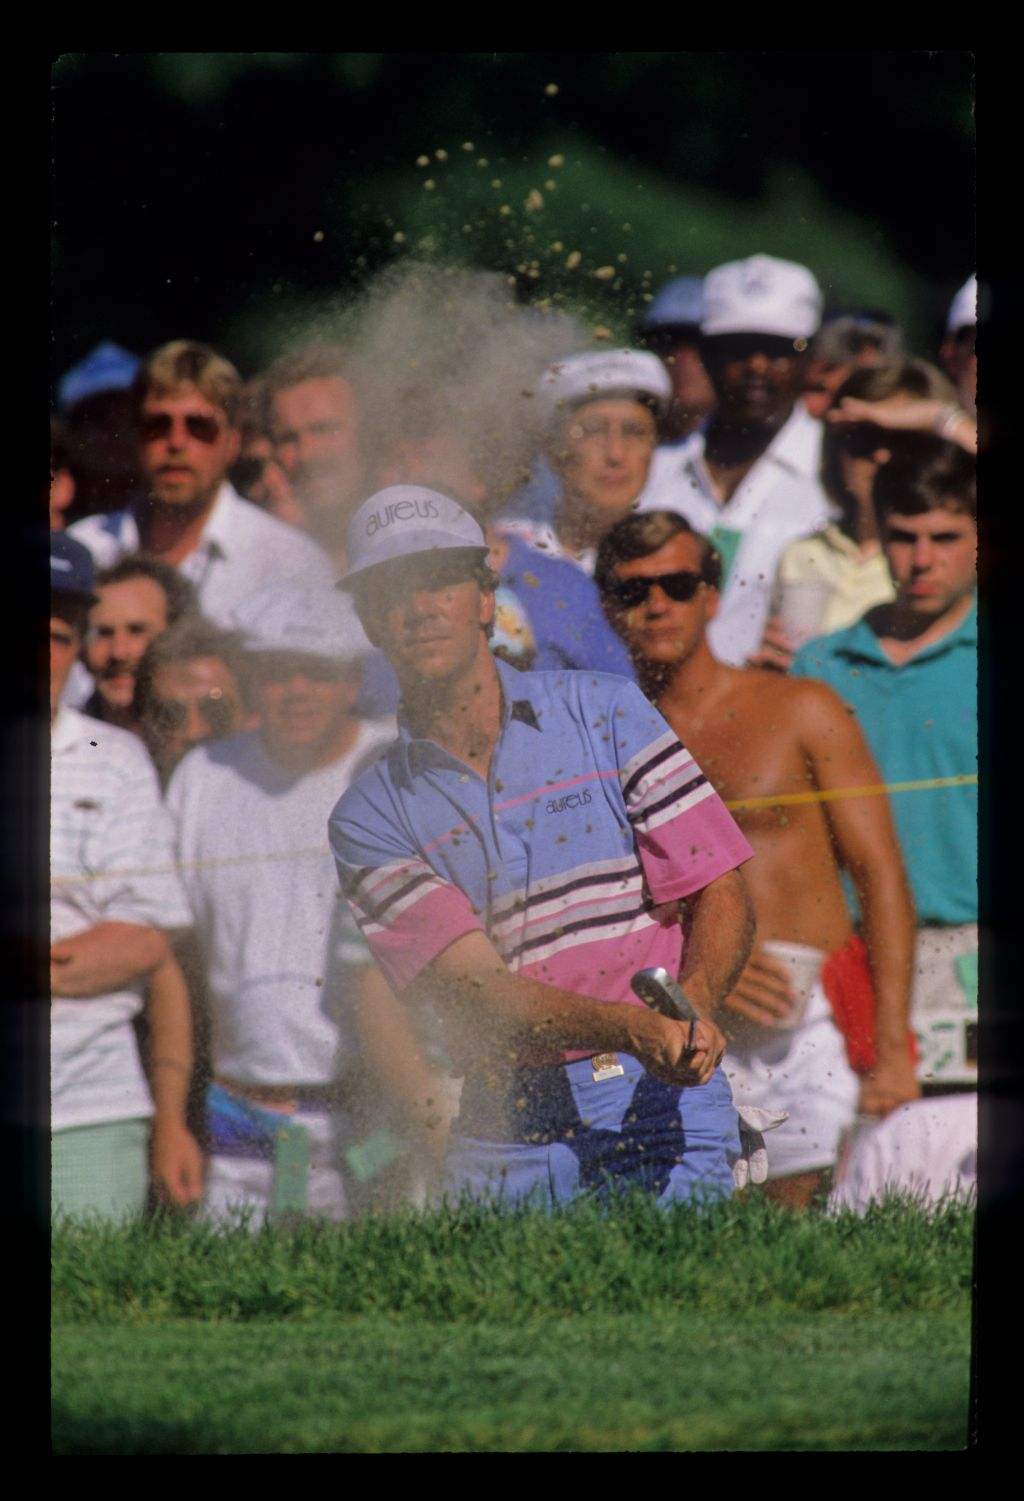 Larry Mize splashing from a bunker during the 1988 US Open